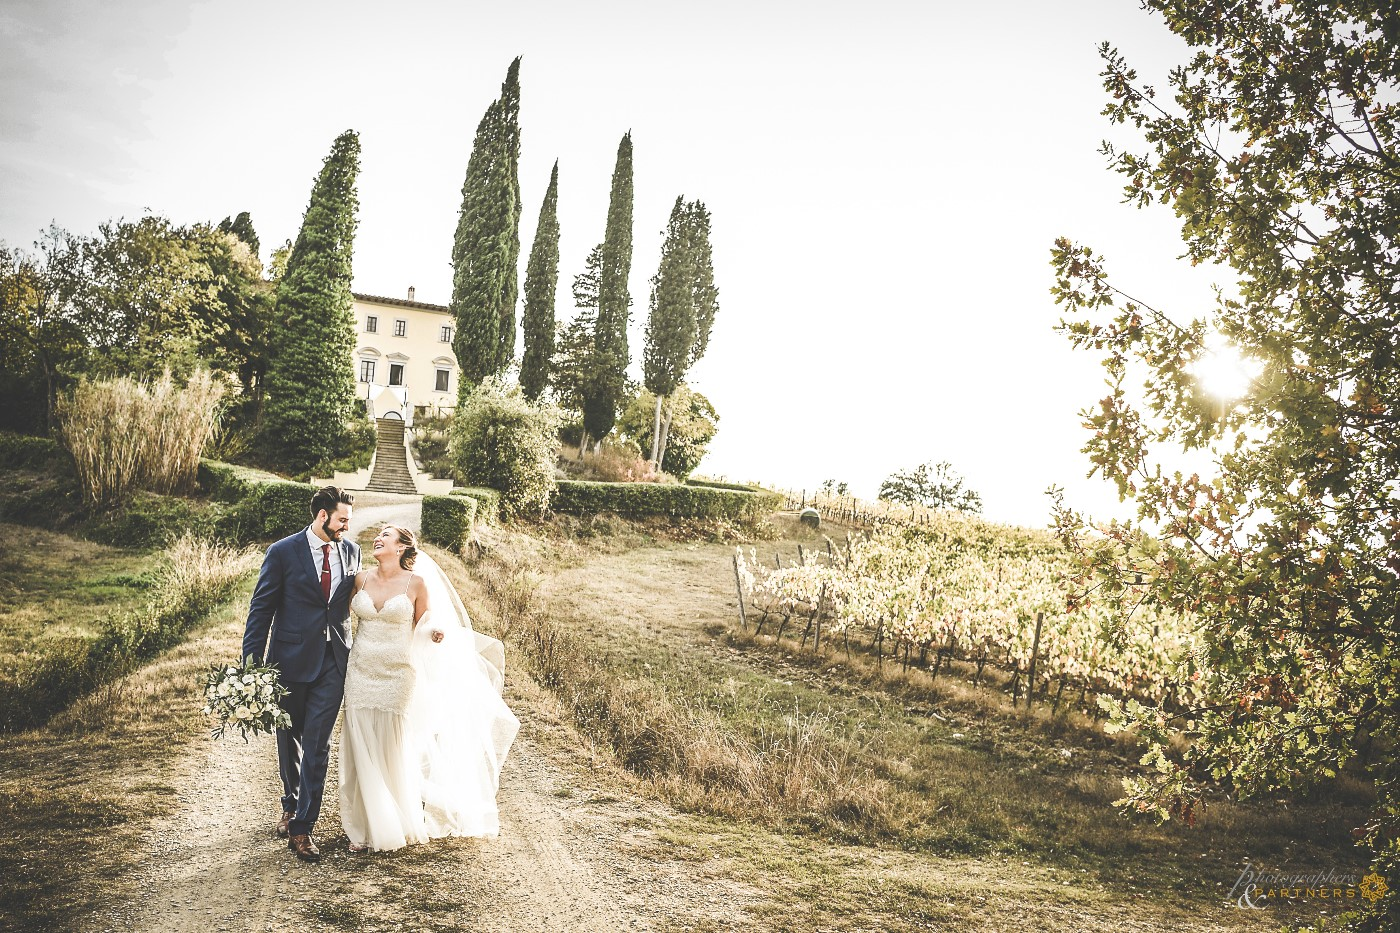 photographers_weddings_arezzo_12.jpg